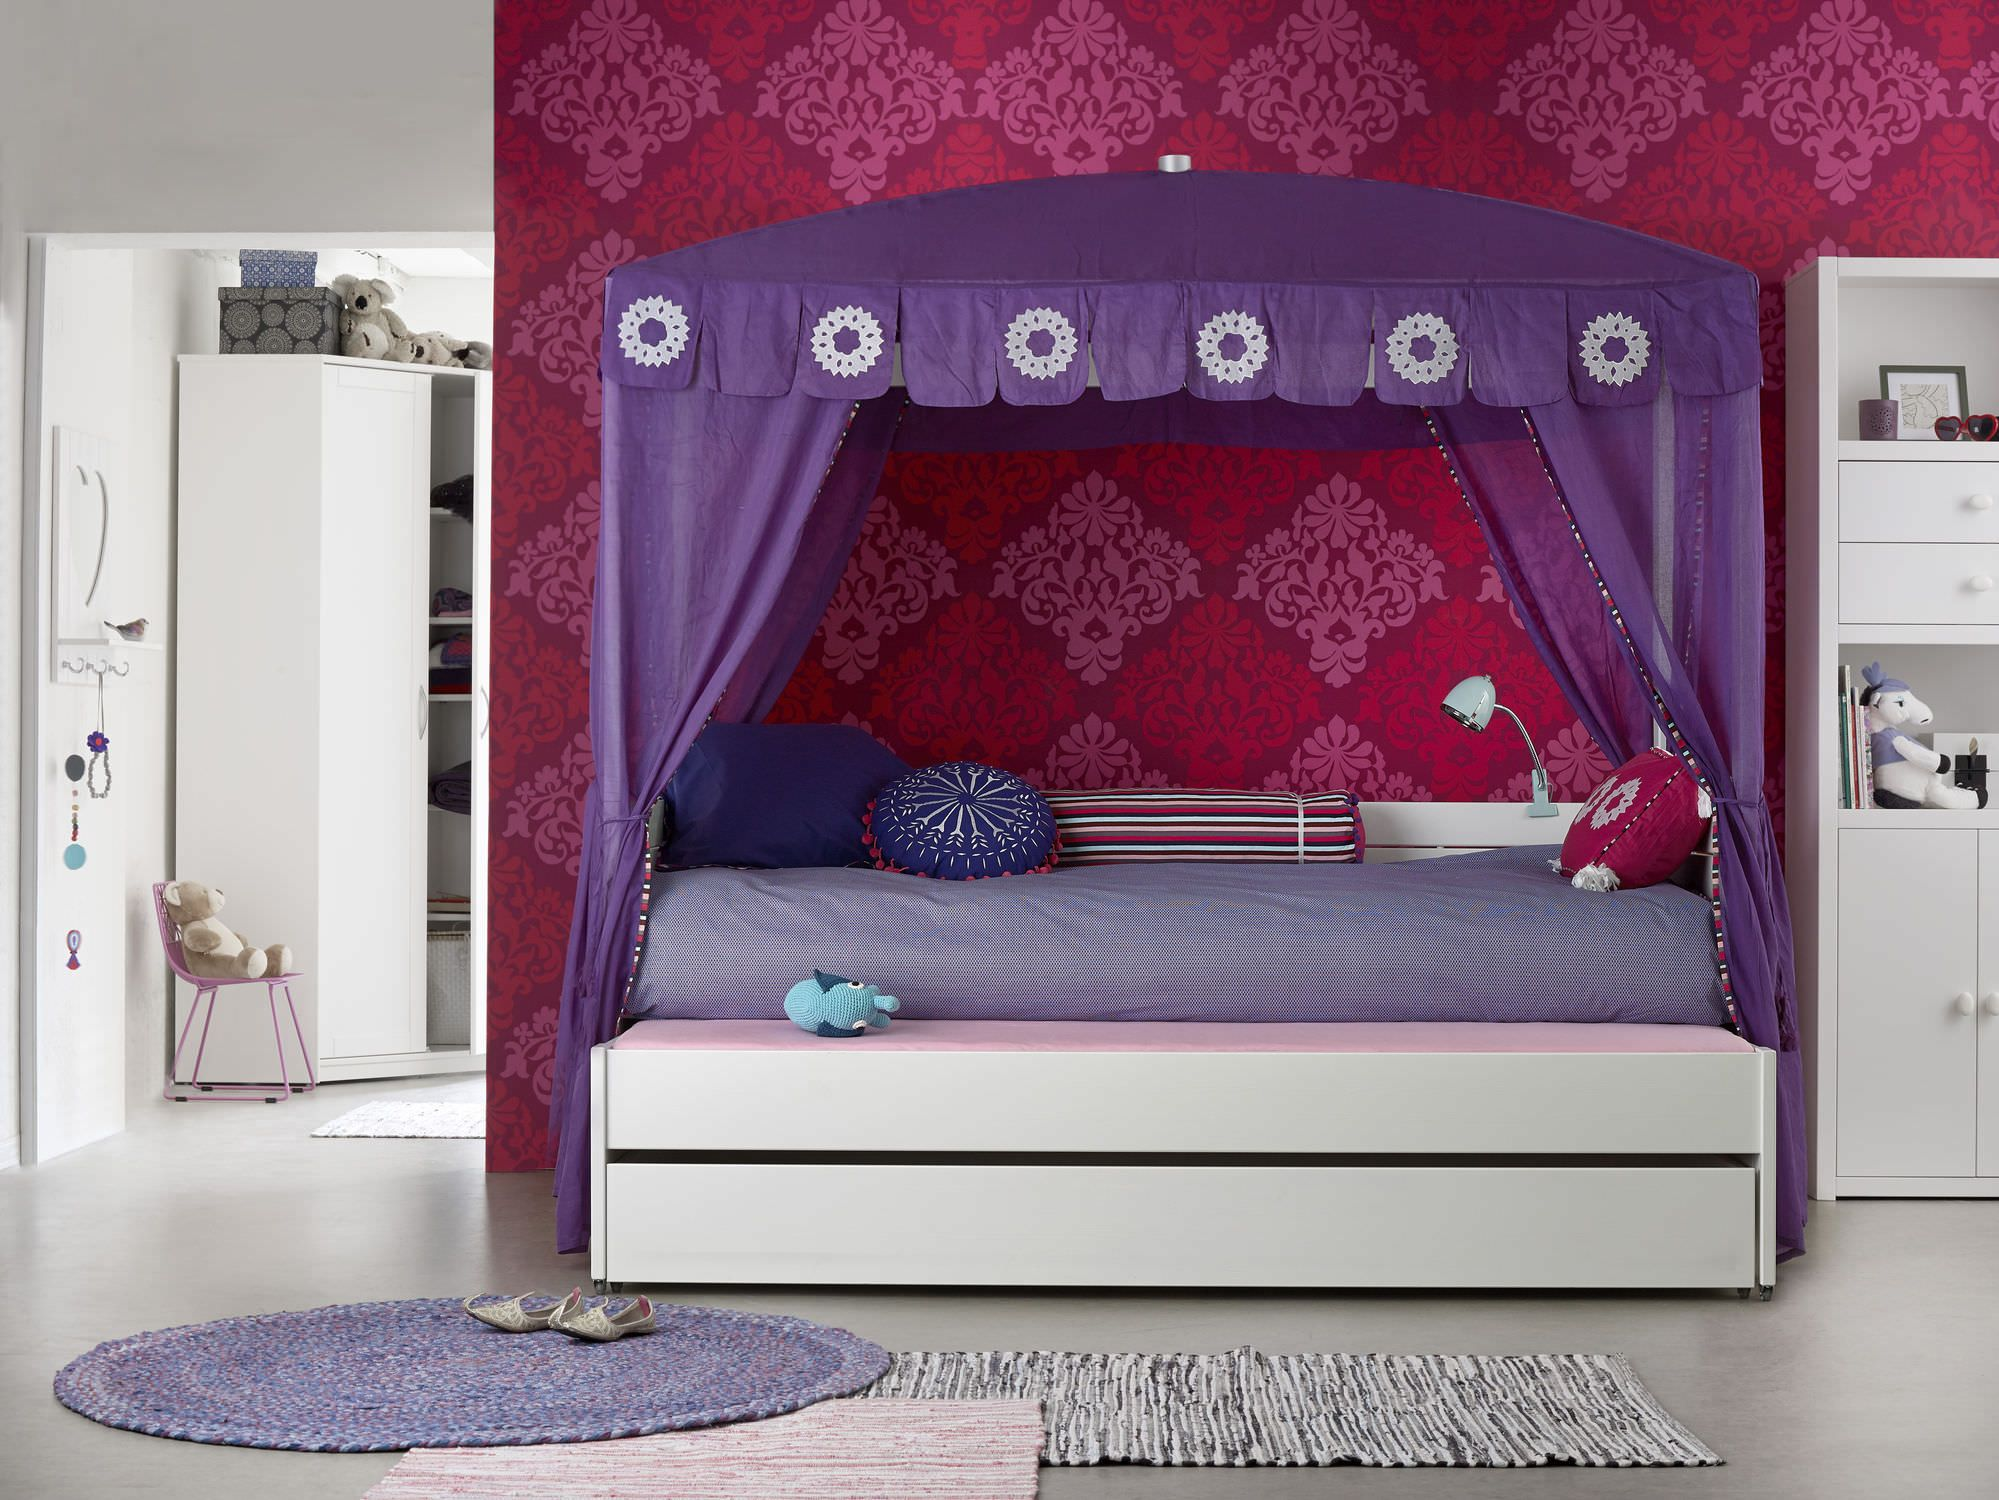 Cute Girls Canopy Beds Ideas Sets - http://katrinahousing.net/cute-girls-canopy-beds-ideas-sets/